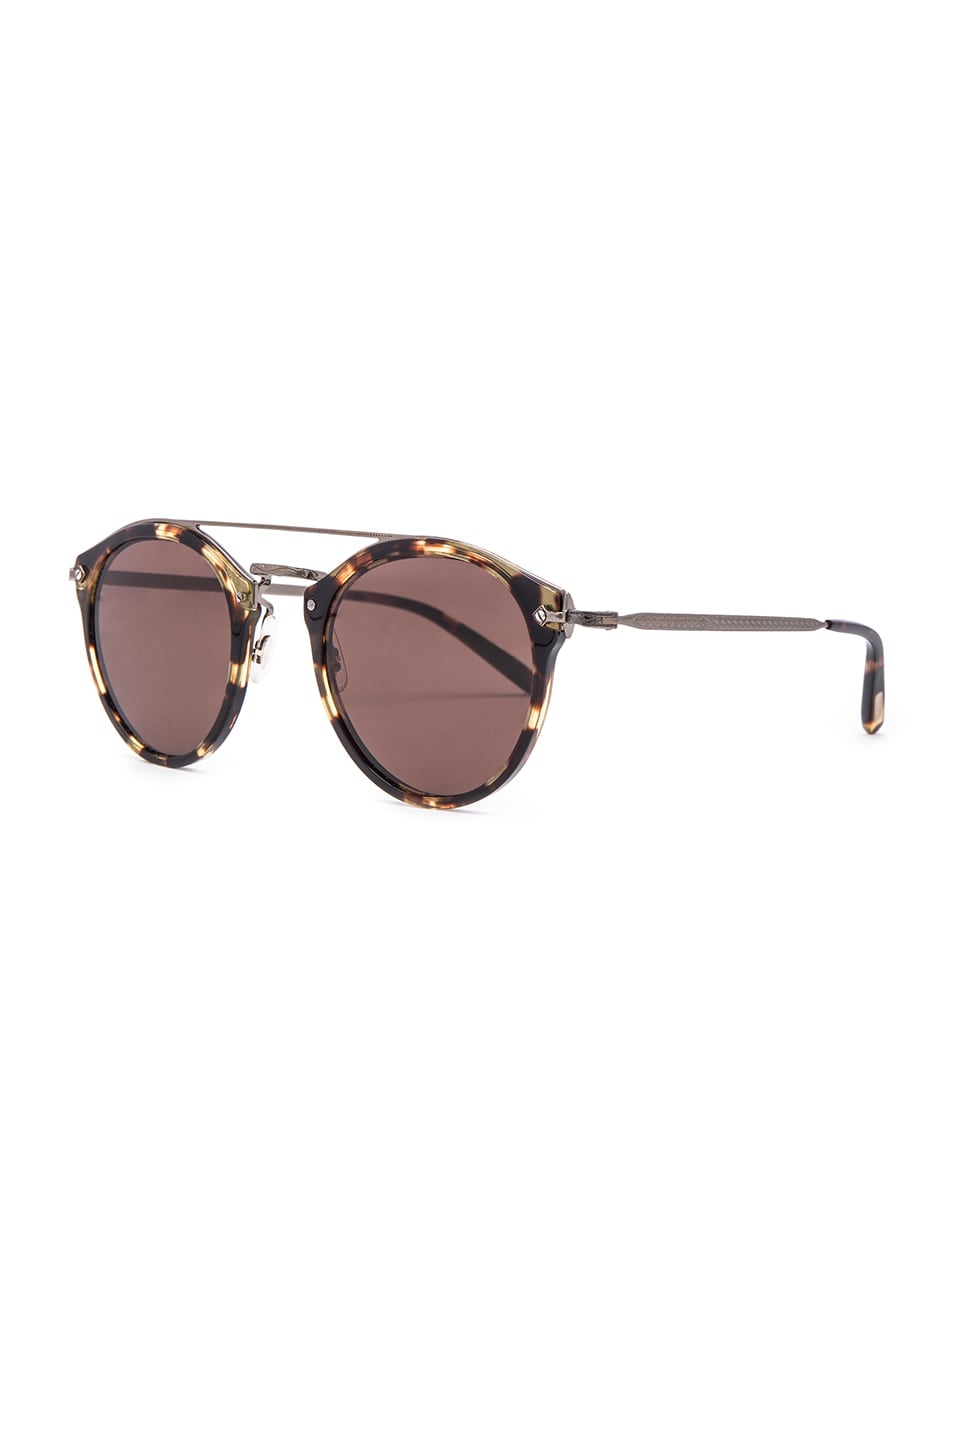 Image 2 of Oliver Peoples Remick Sunglasses in Vintage & Antique Gold